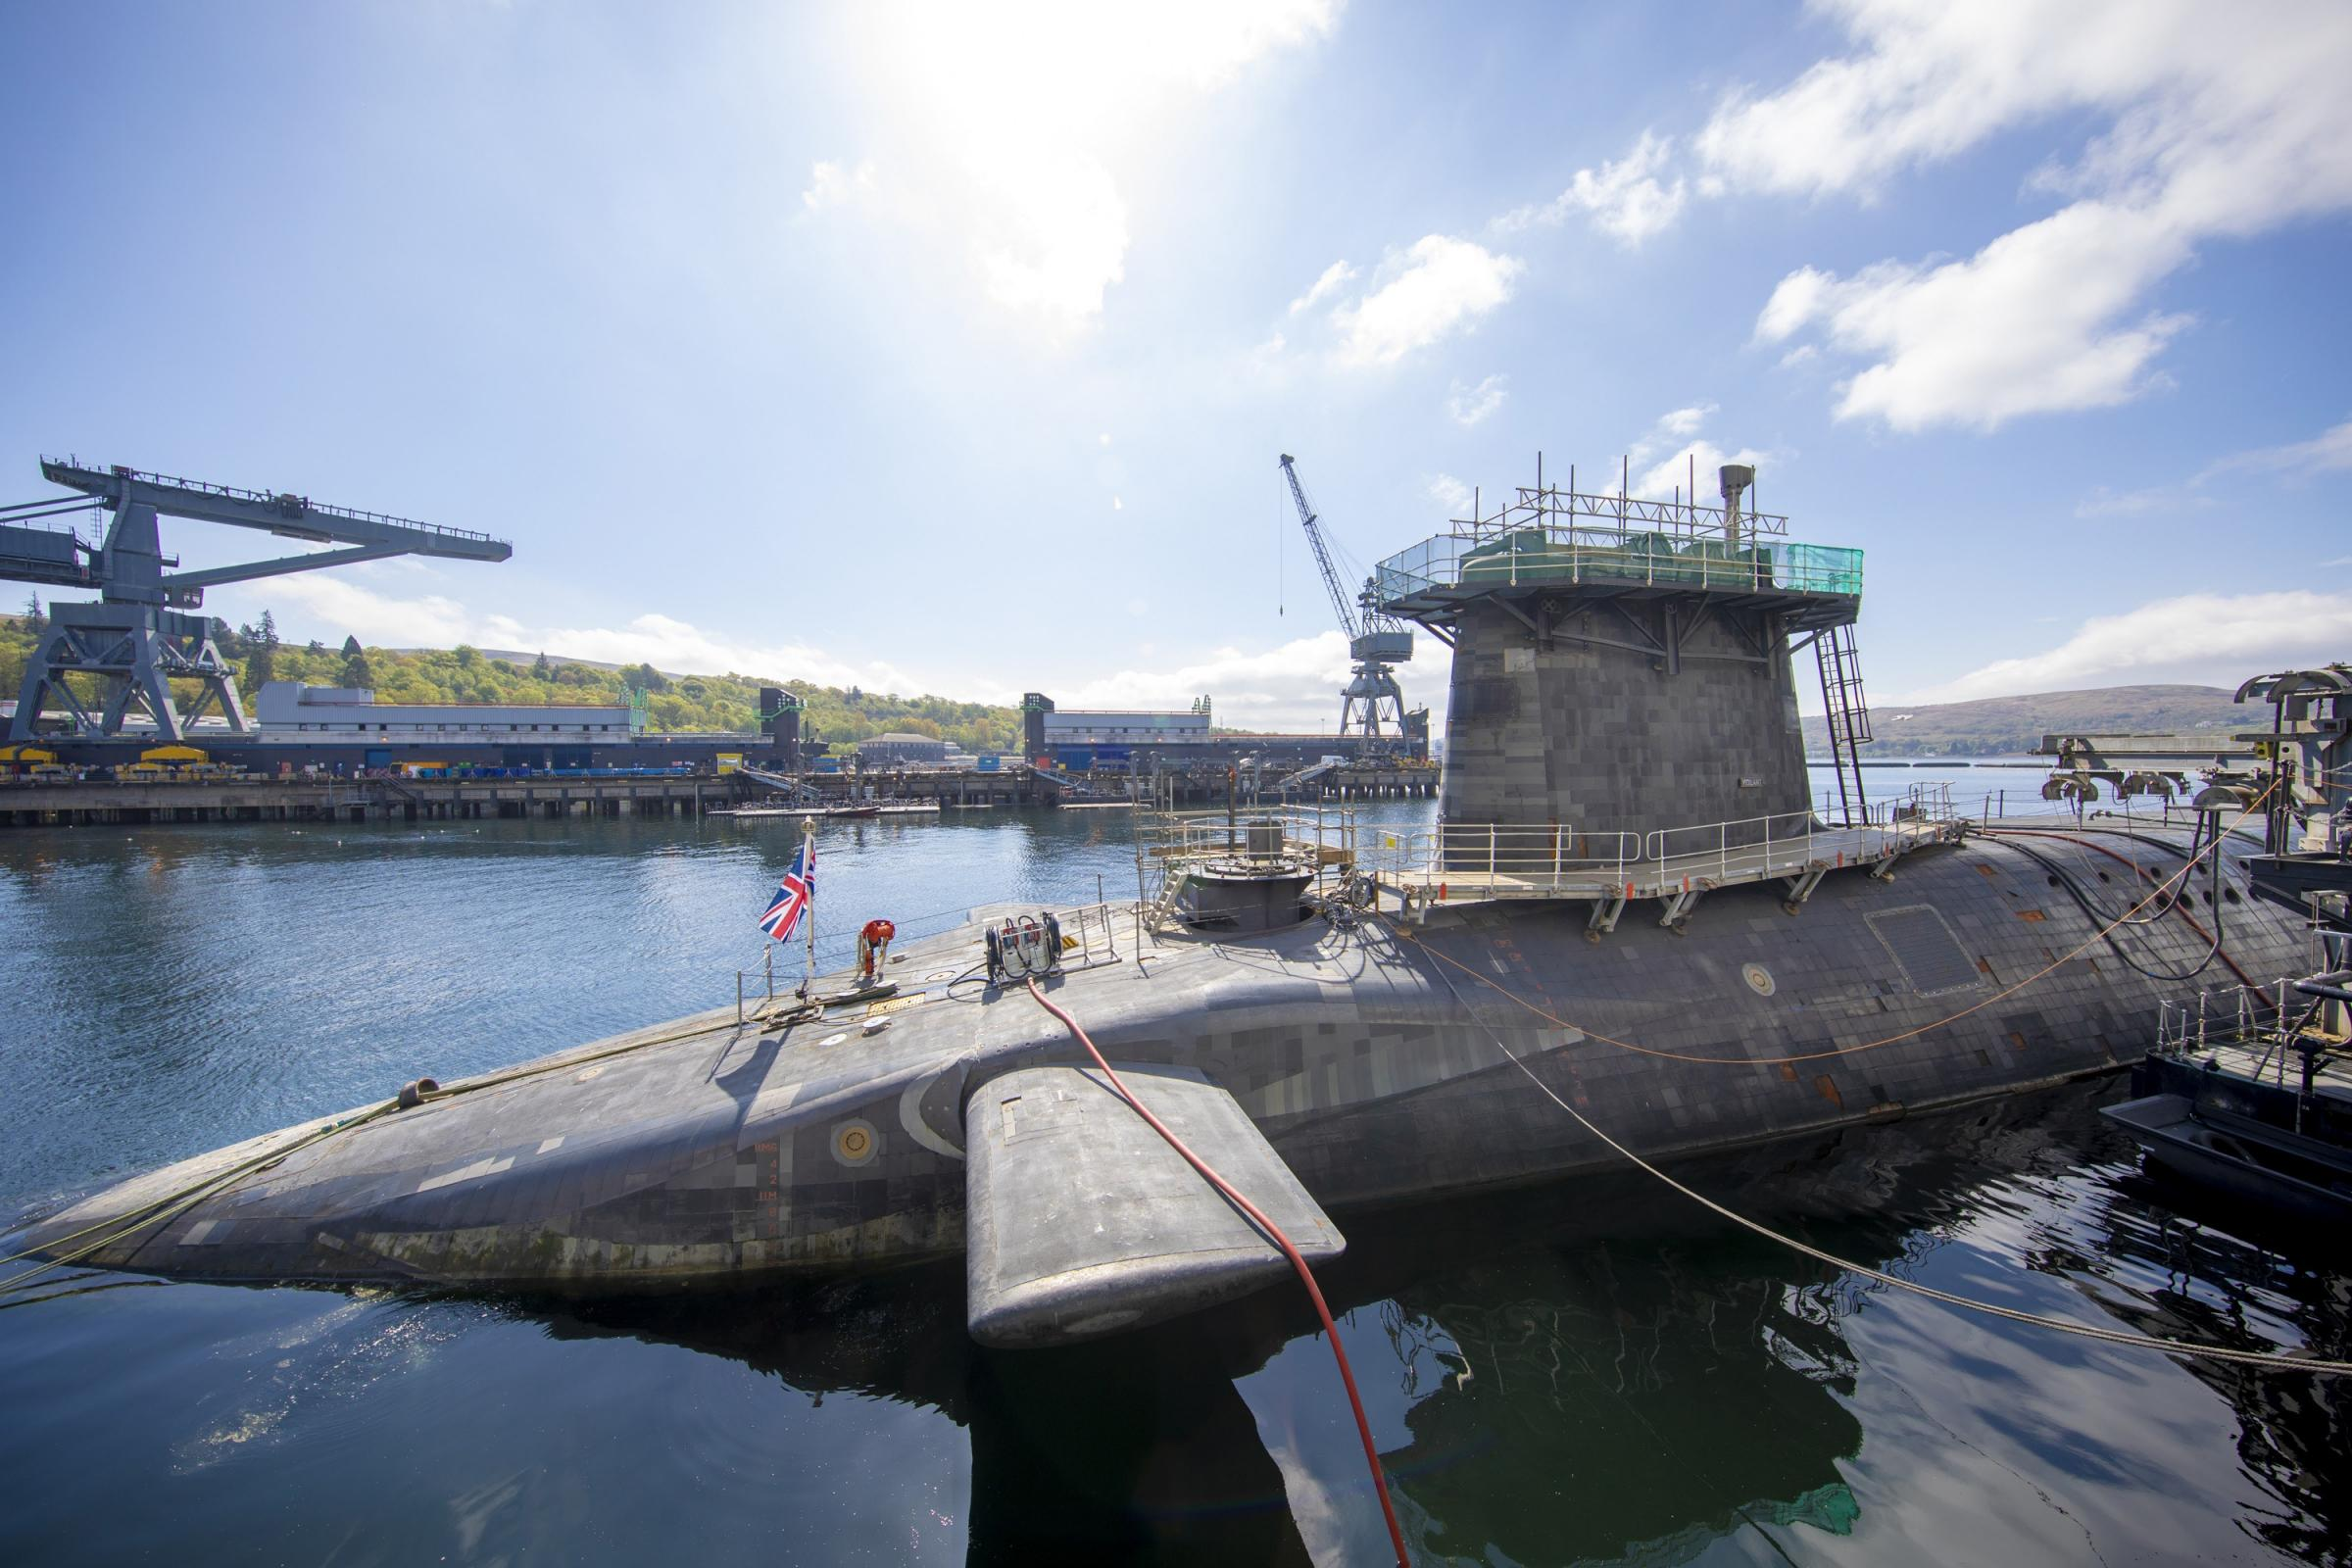 SNP considers railway station for Trident nuclear base